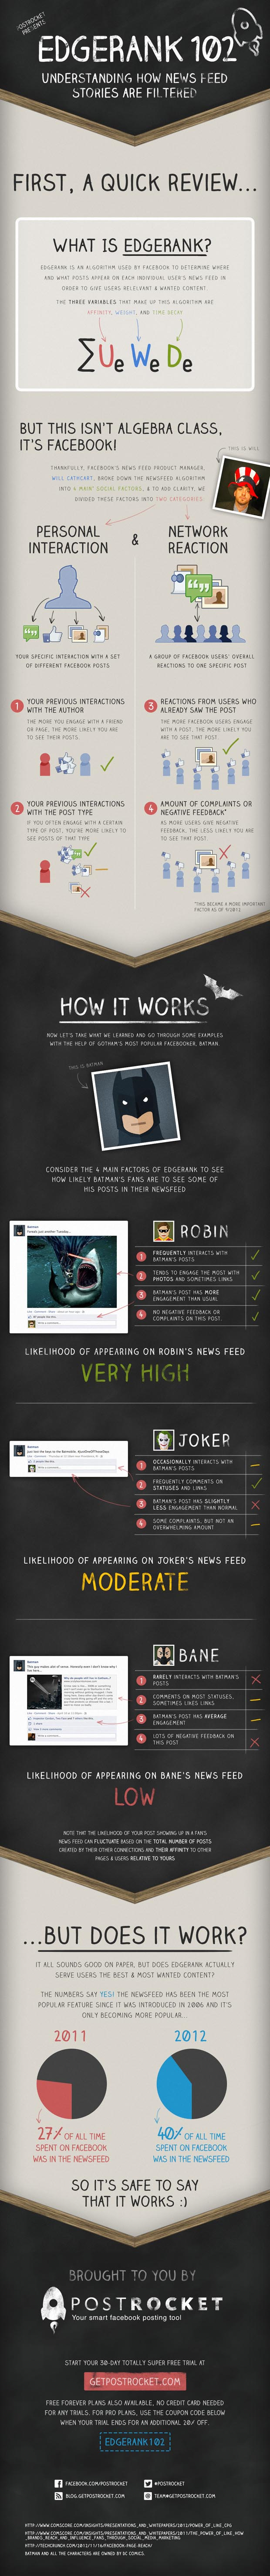 How Facebook EdgeRank Works for Batman's Fan Page